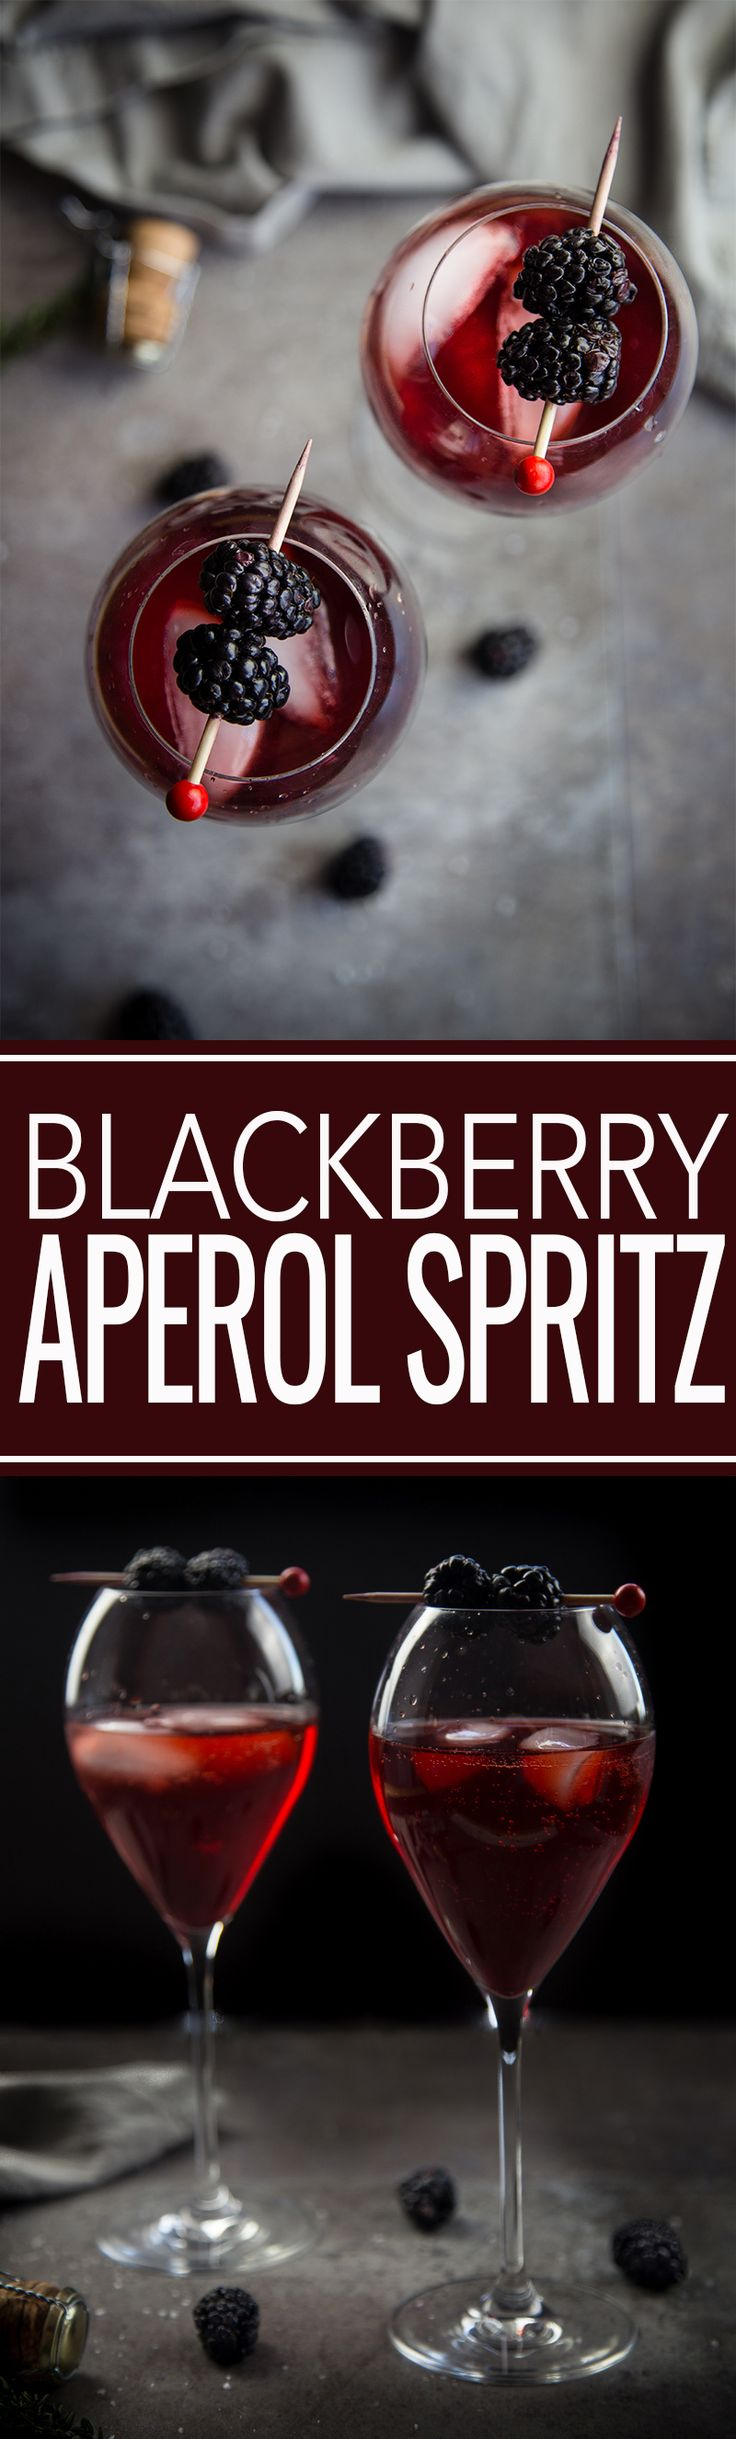 A twist on a classic Aperol Spritz inspired by the Pacific Northwest. Blackberry Aperol Spritz Cocktail, made with blackberry simple syrup. Absolutely gorgeous, refreshing, and elegant. #cocktails #aperolspritz